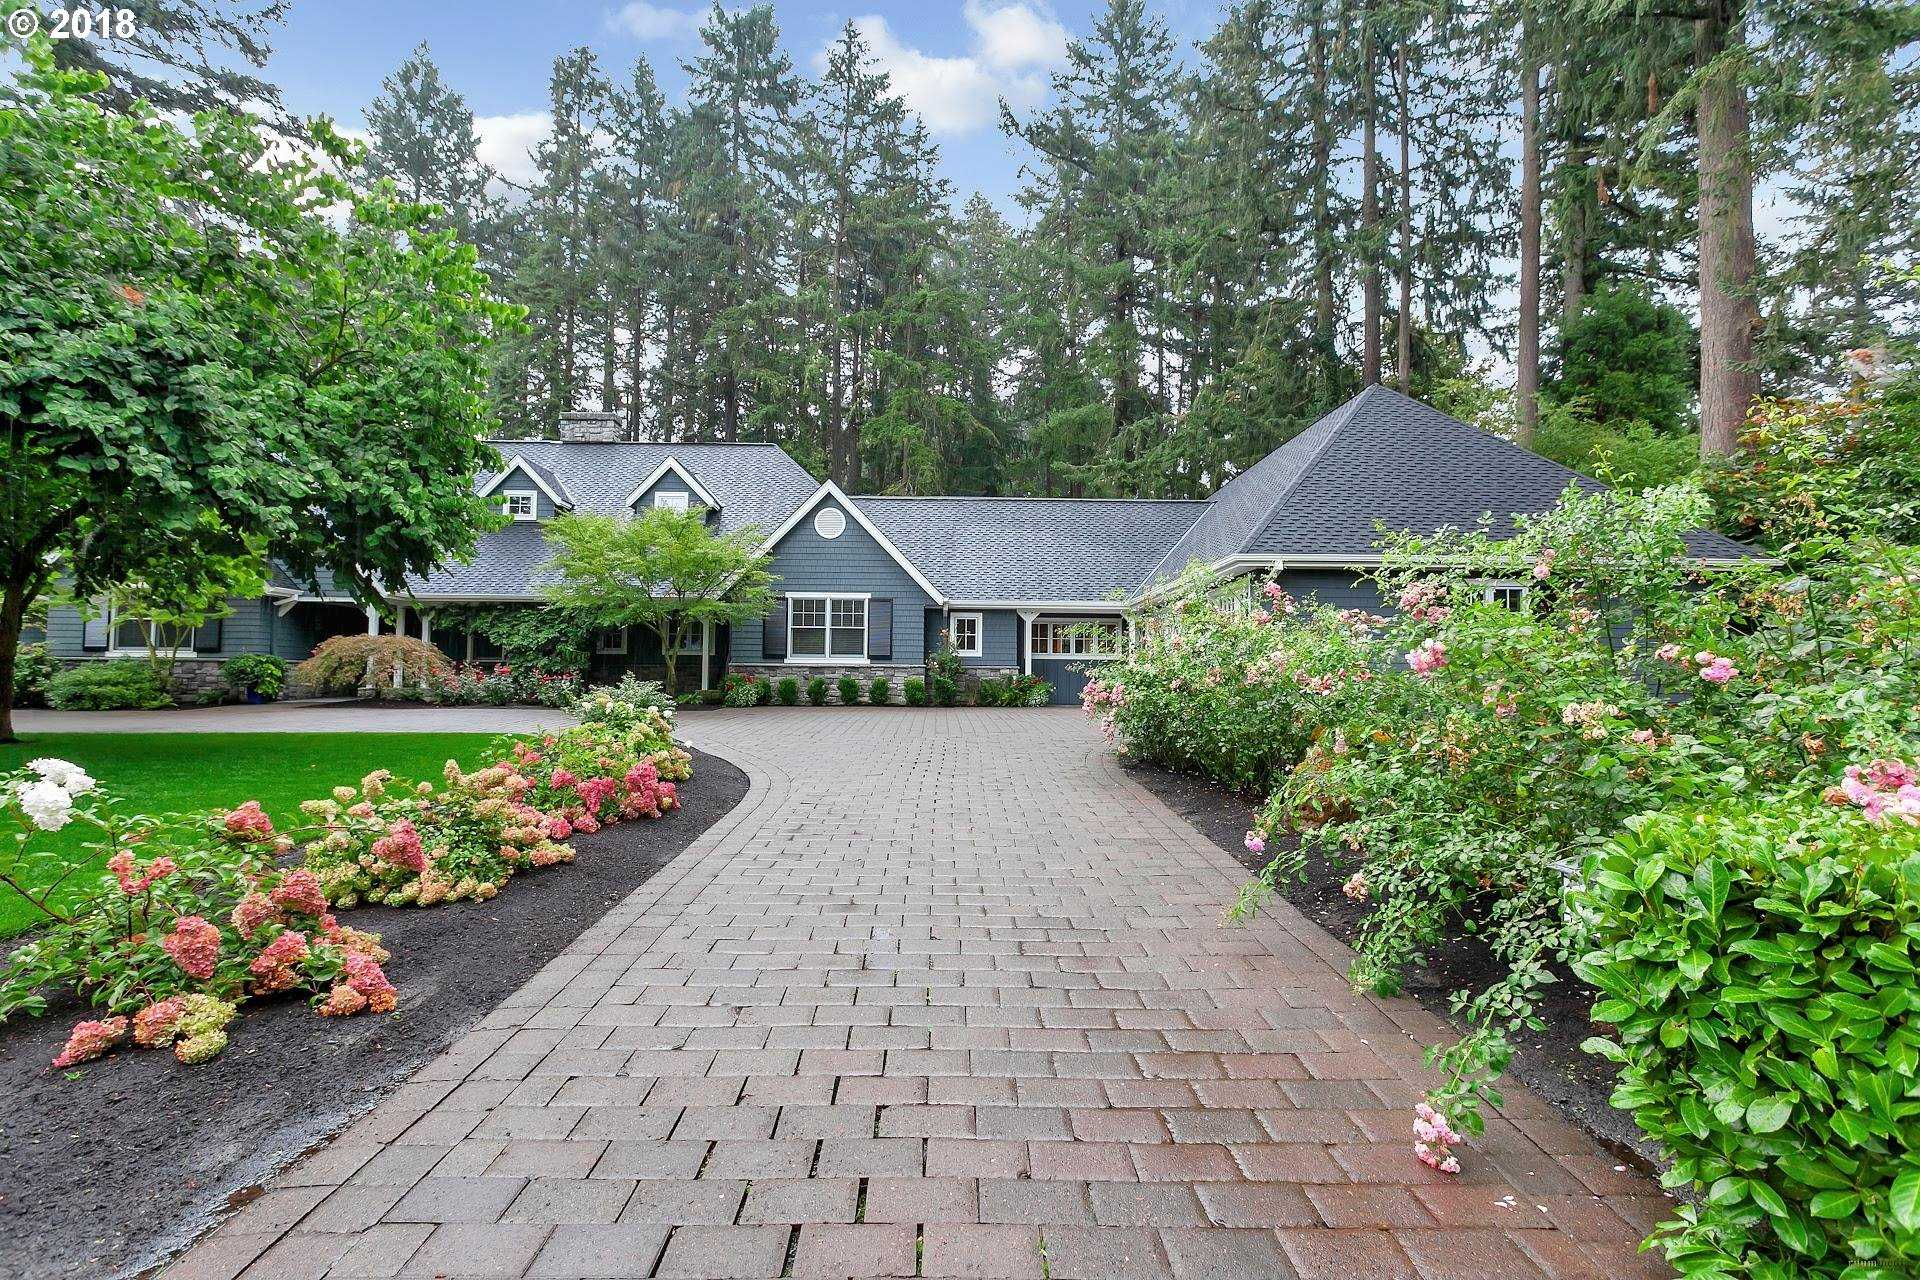 $2,350,000 - 5Br/5Ba -  for Sale in Forest Hills, Lake Oswego